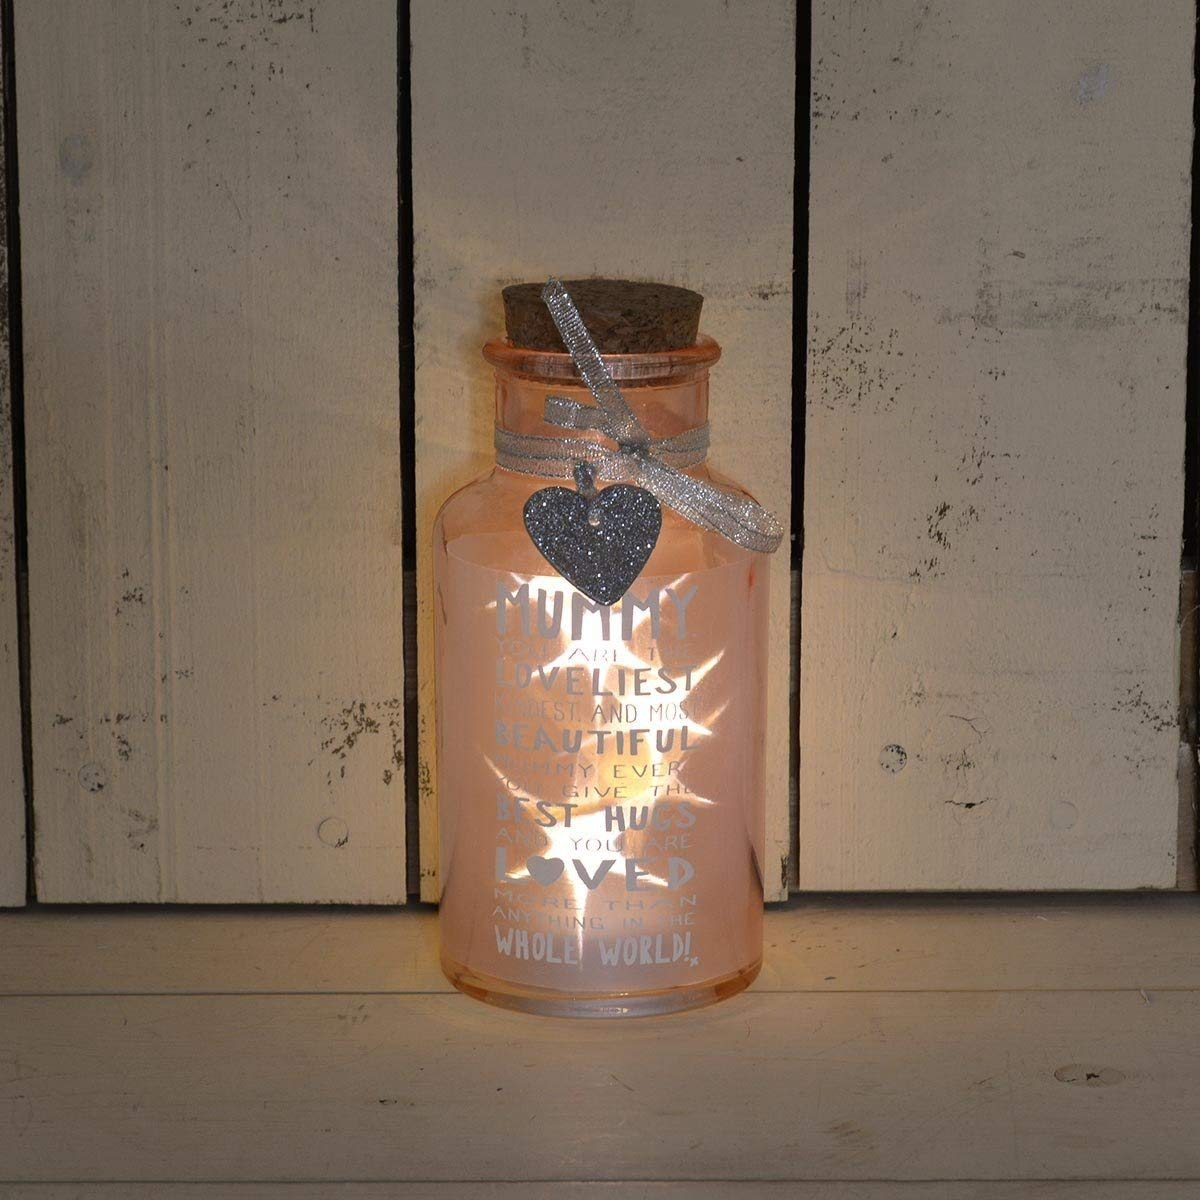 Loveliest Mummy Light Up Jar Messages Of Love Gift Range Birthday Christmas Gifts xpressions